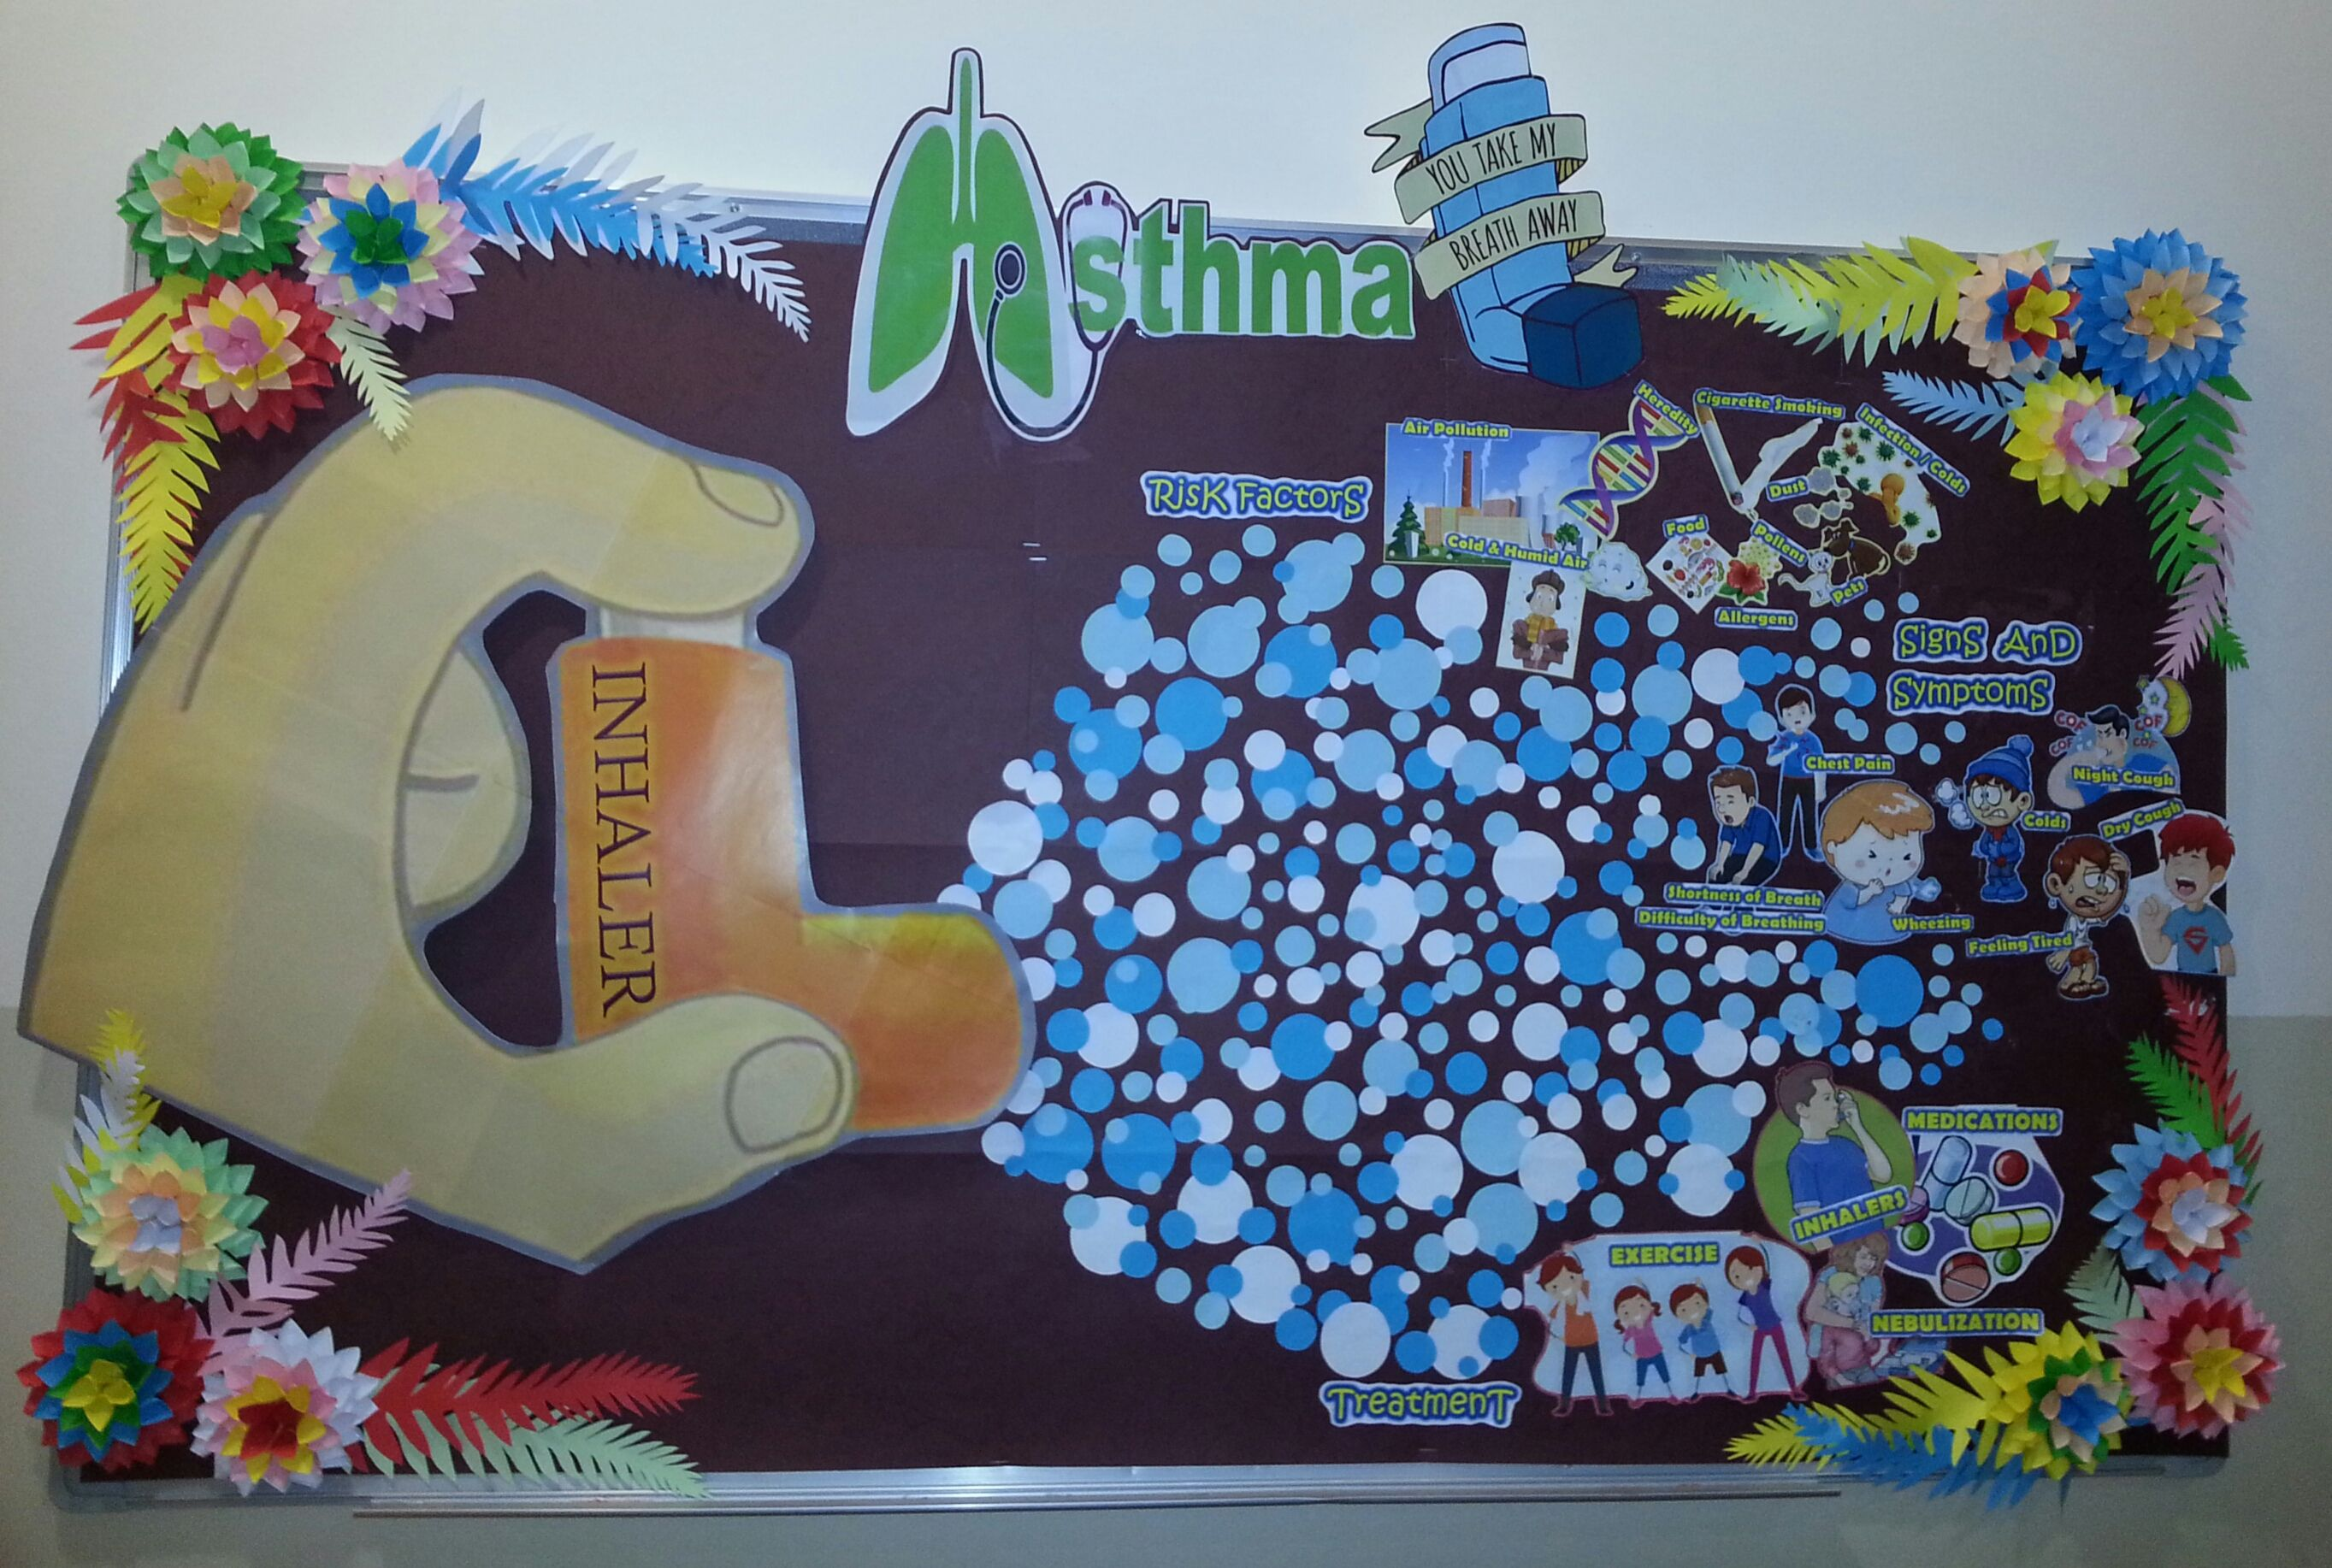 Asthma (With images) Bulletin board decor, School